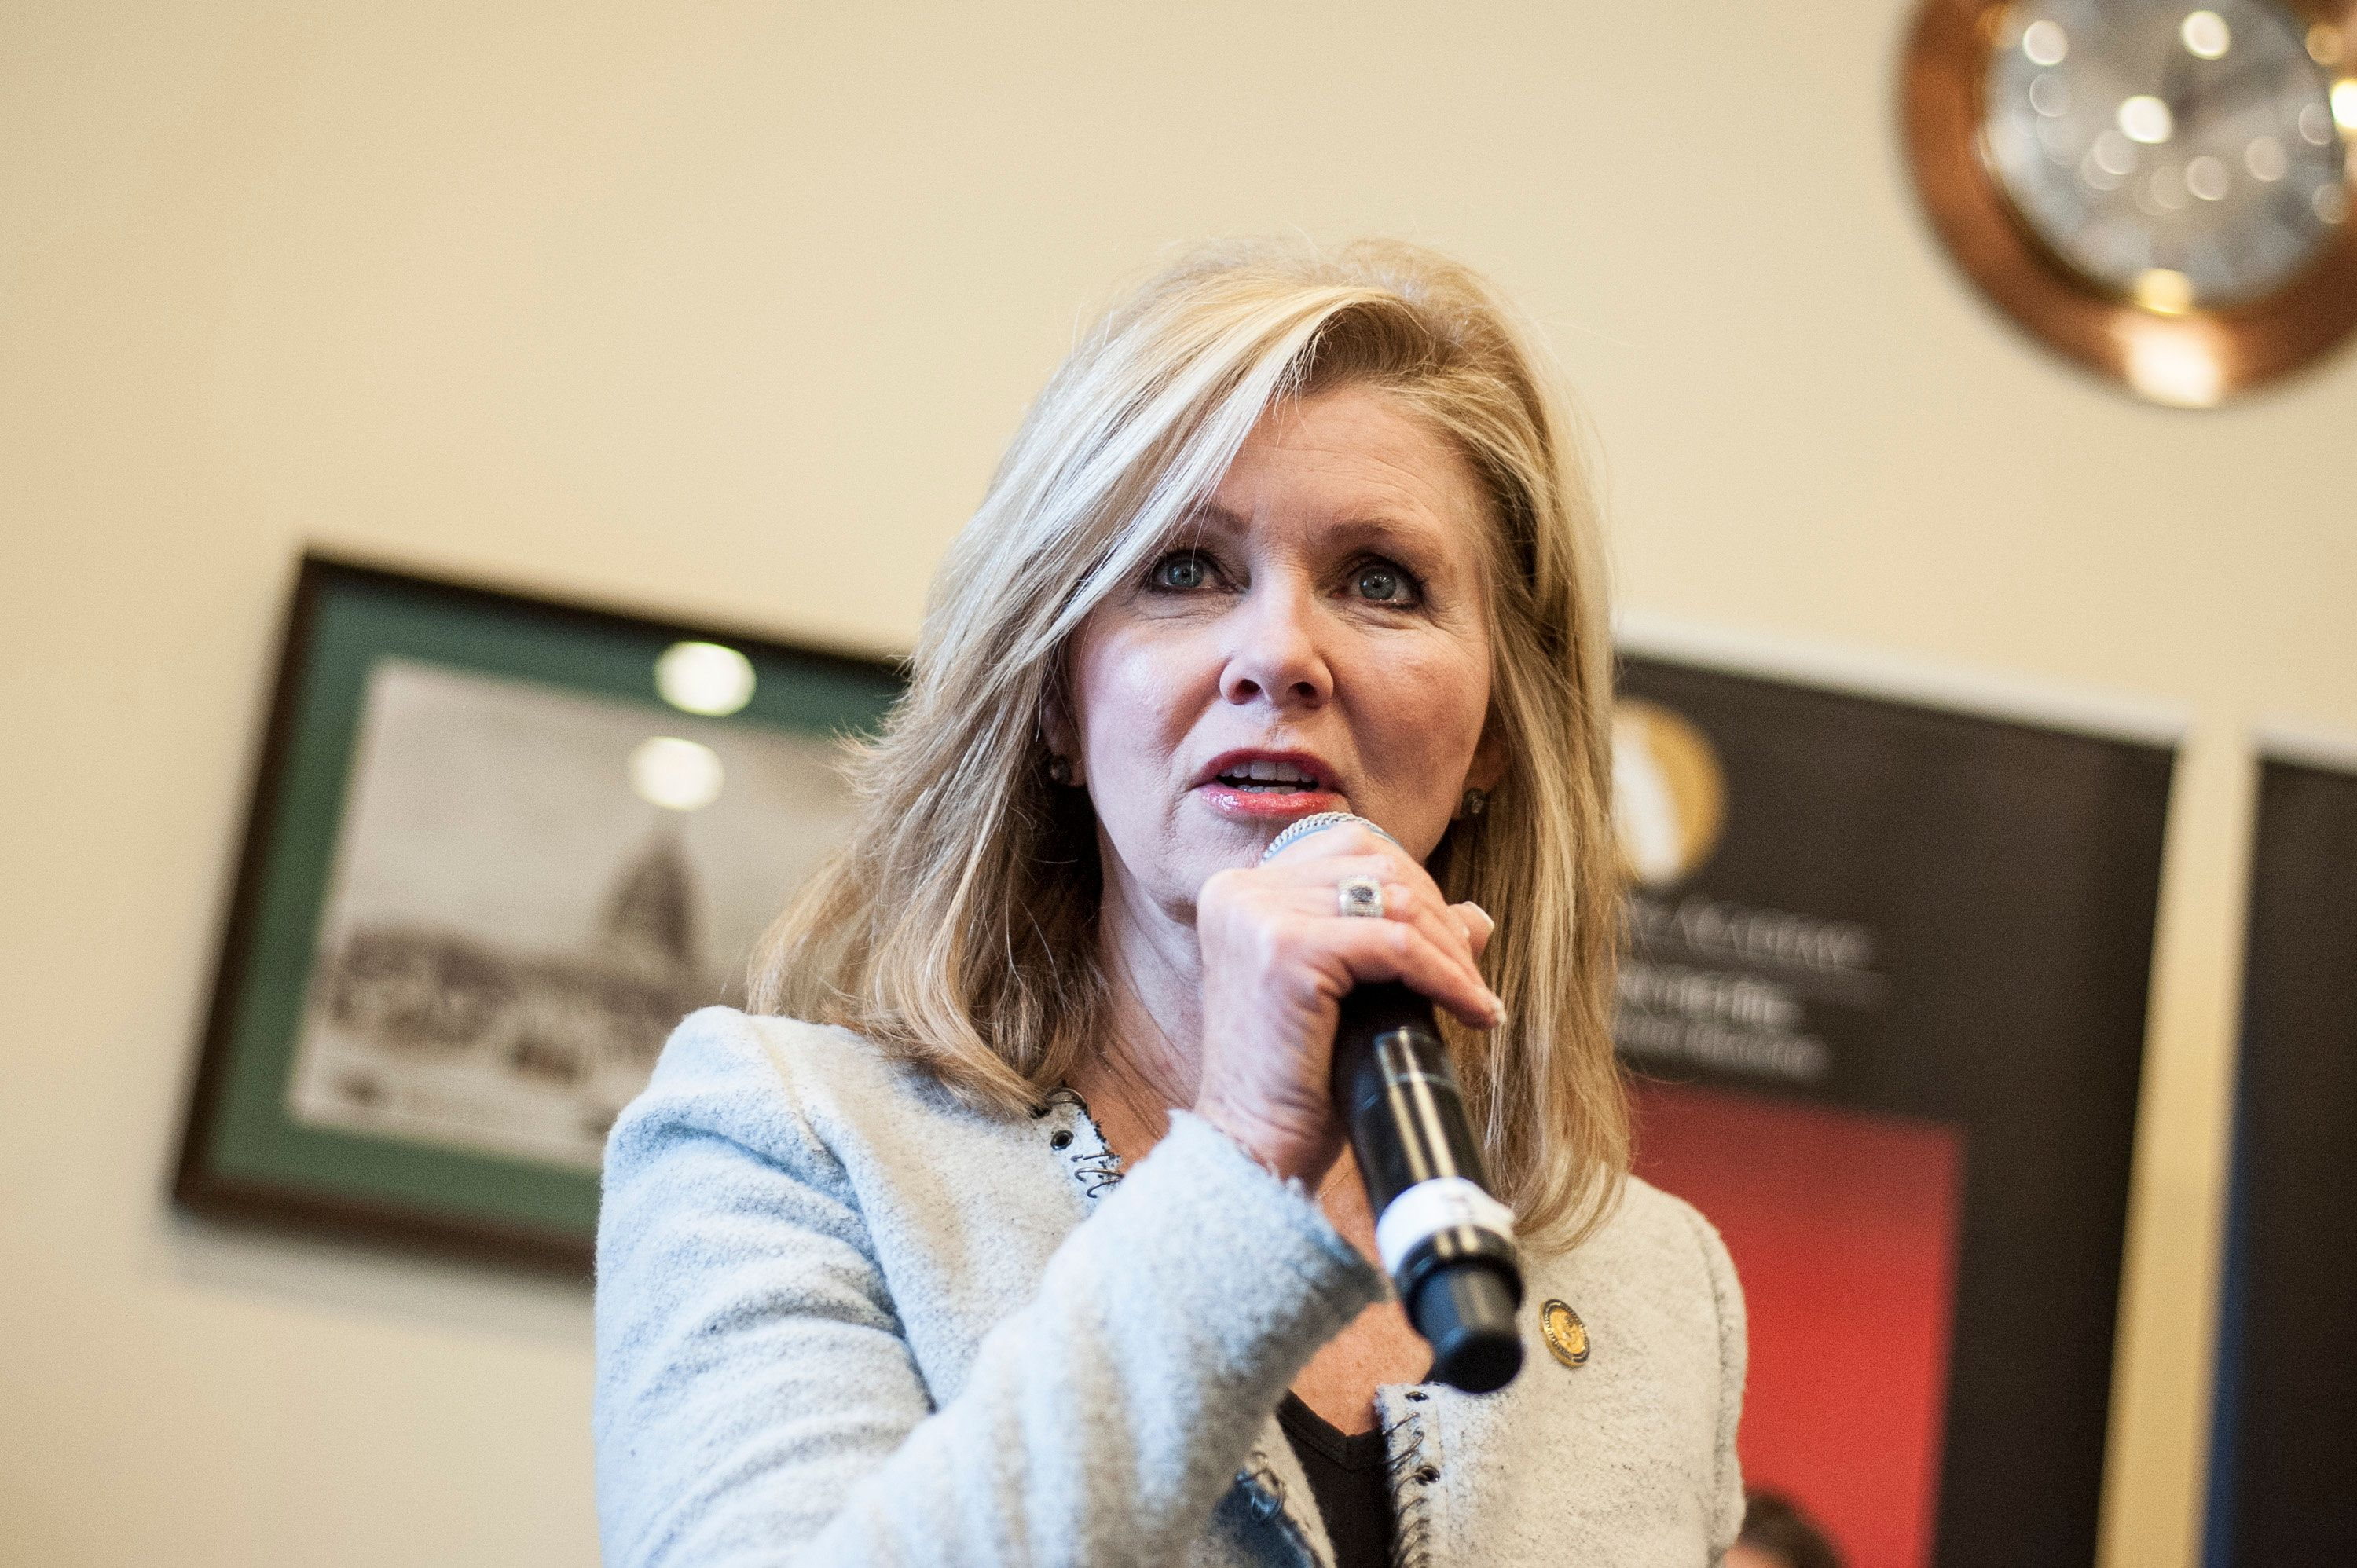 WASHINGTON, DC - JANUARY 16: Marsha Blackburn speaks during The Recording Academy's Hosts A 'Musical Briefing And Welcome To The 113th Congress' at Rayburn House Office Building on January 16, 2013 in Washington, DC. (Photo by Kris Connor/Getty Images)